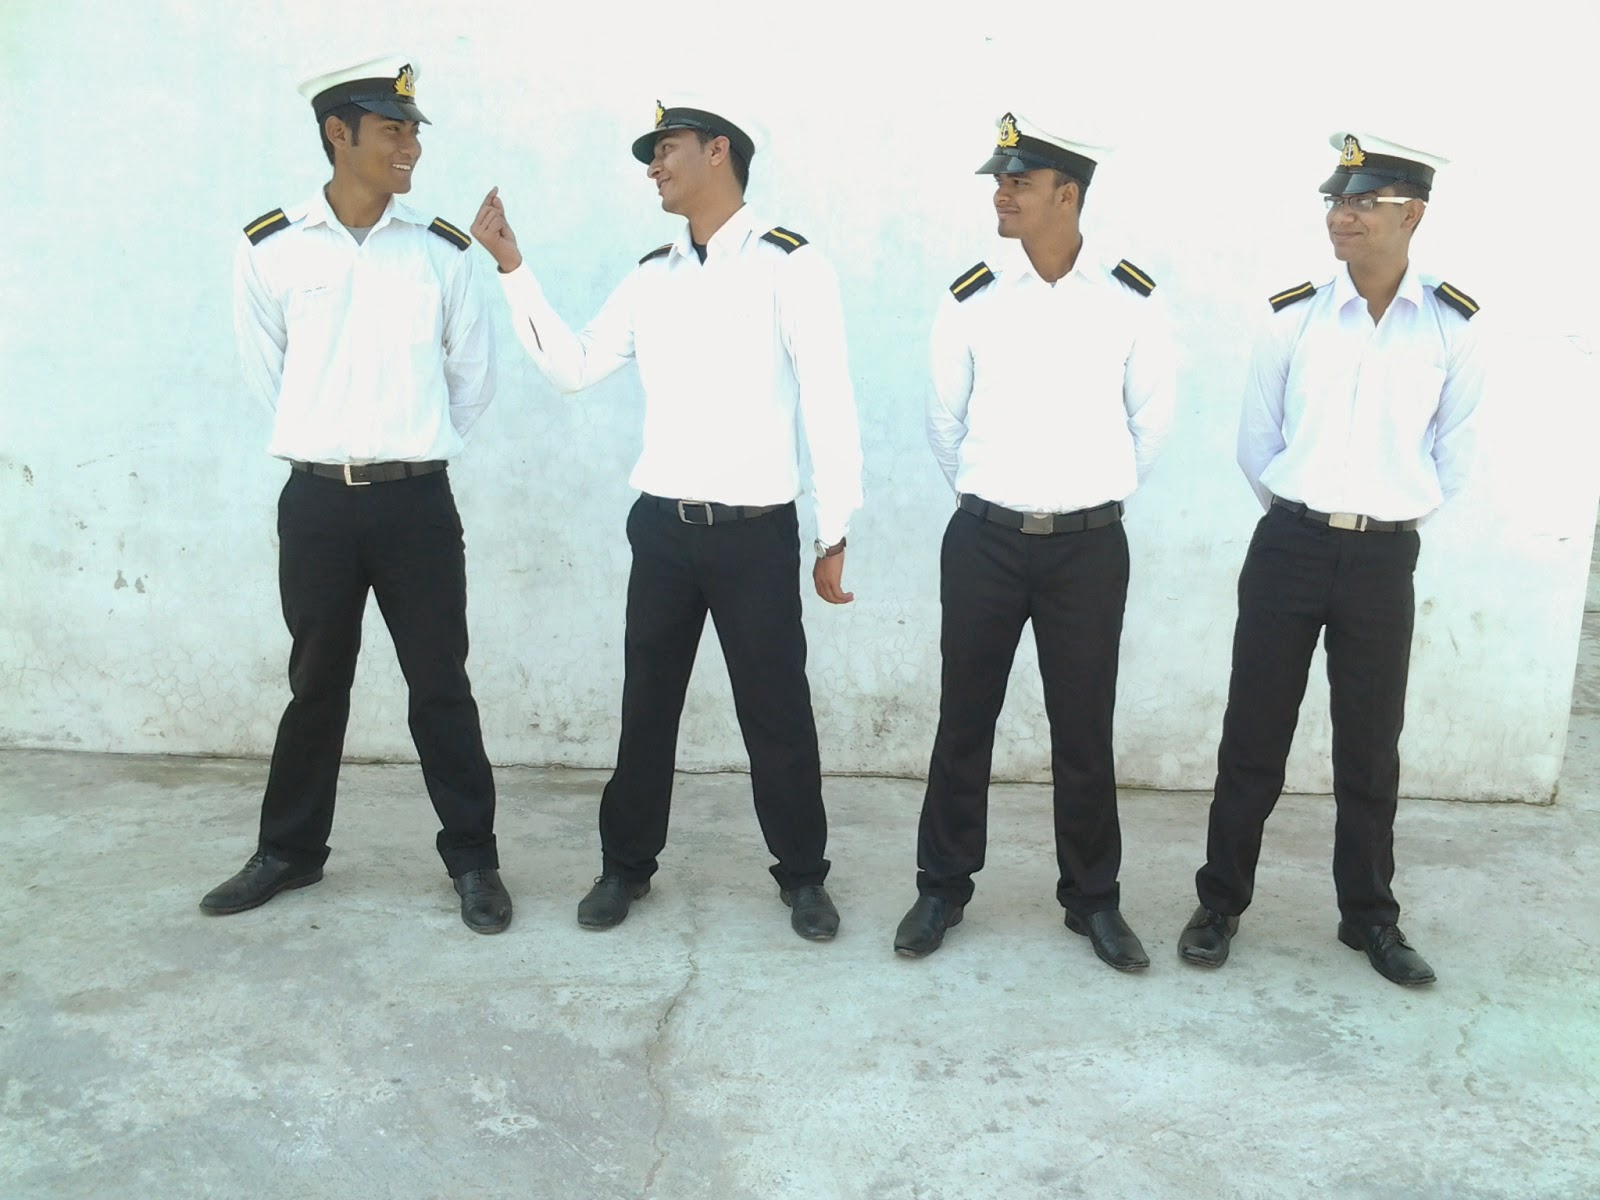 Merchant Navy as a Career Option after 12th